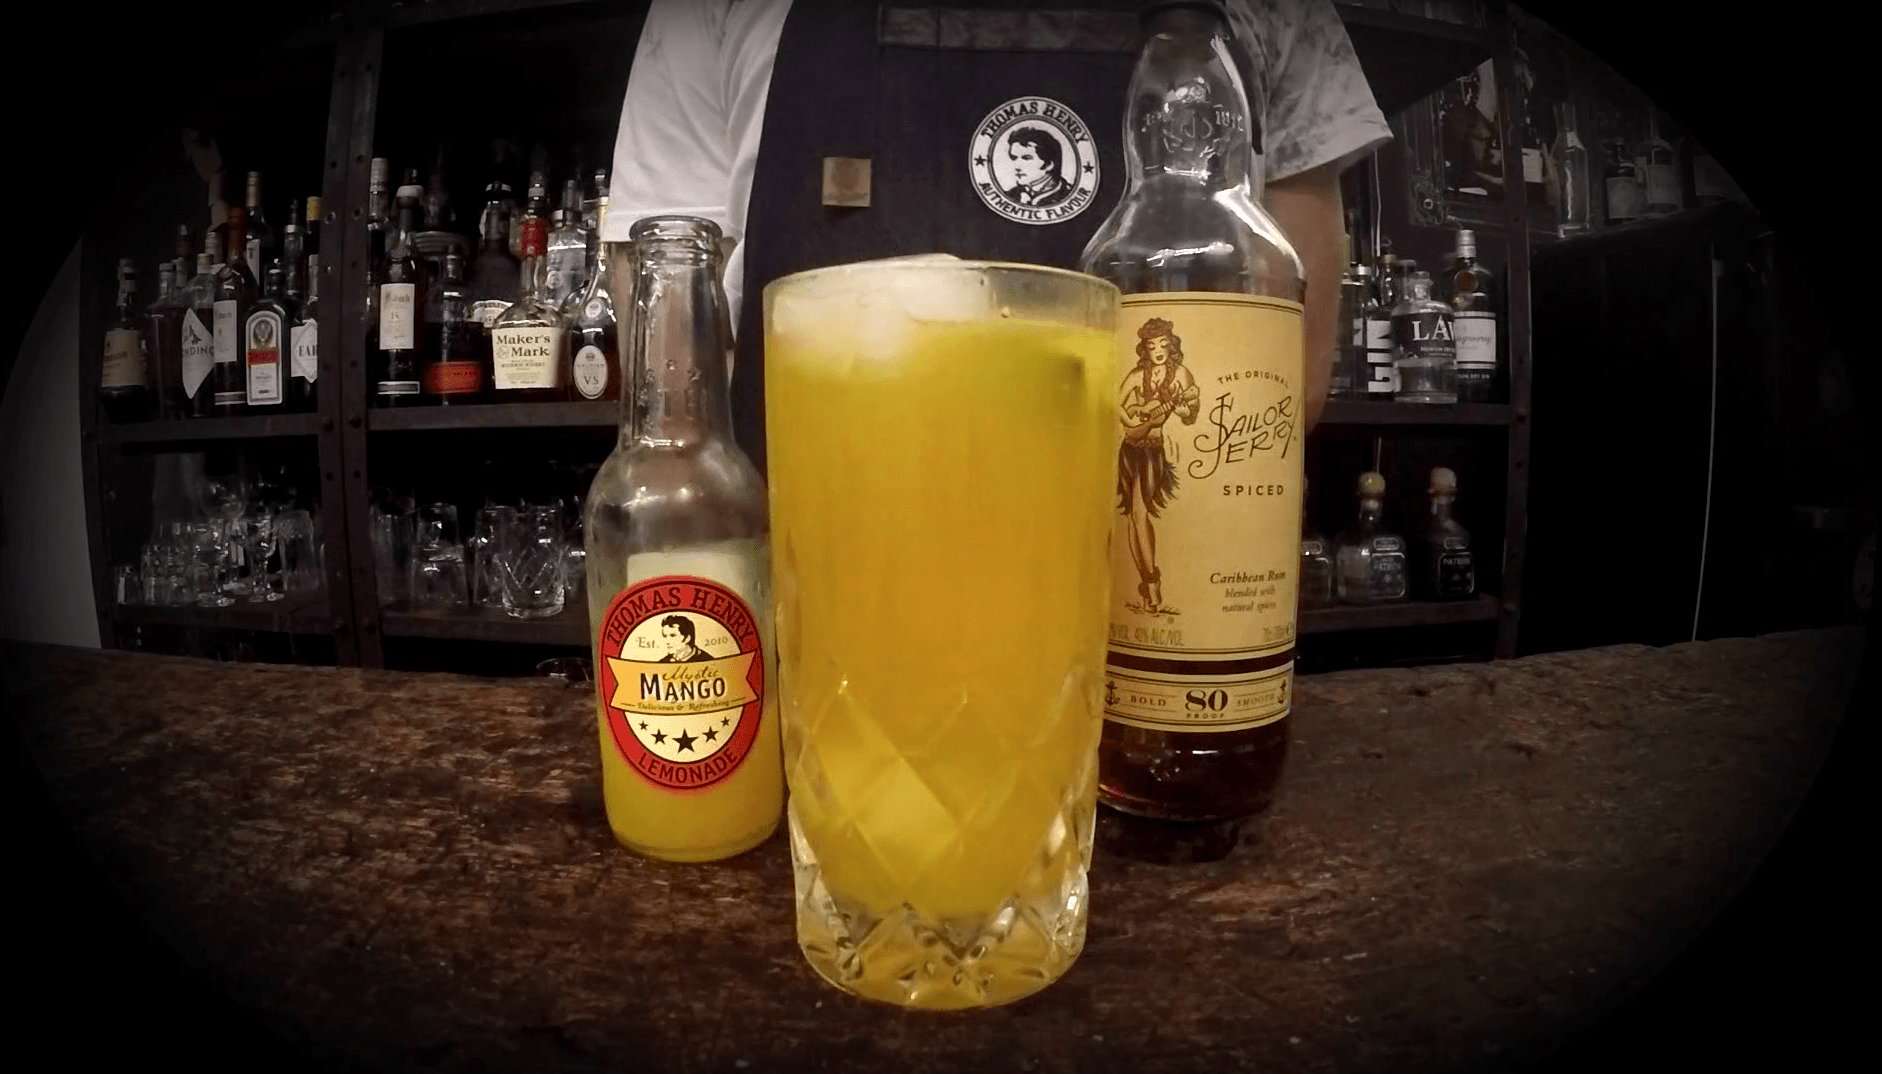 #FridayHighball No. 3 - Mango Jerry